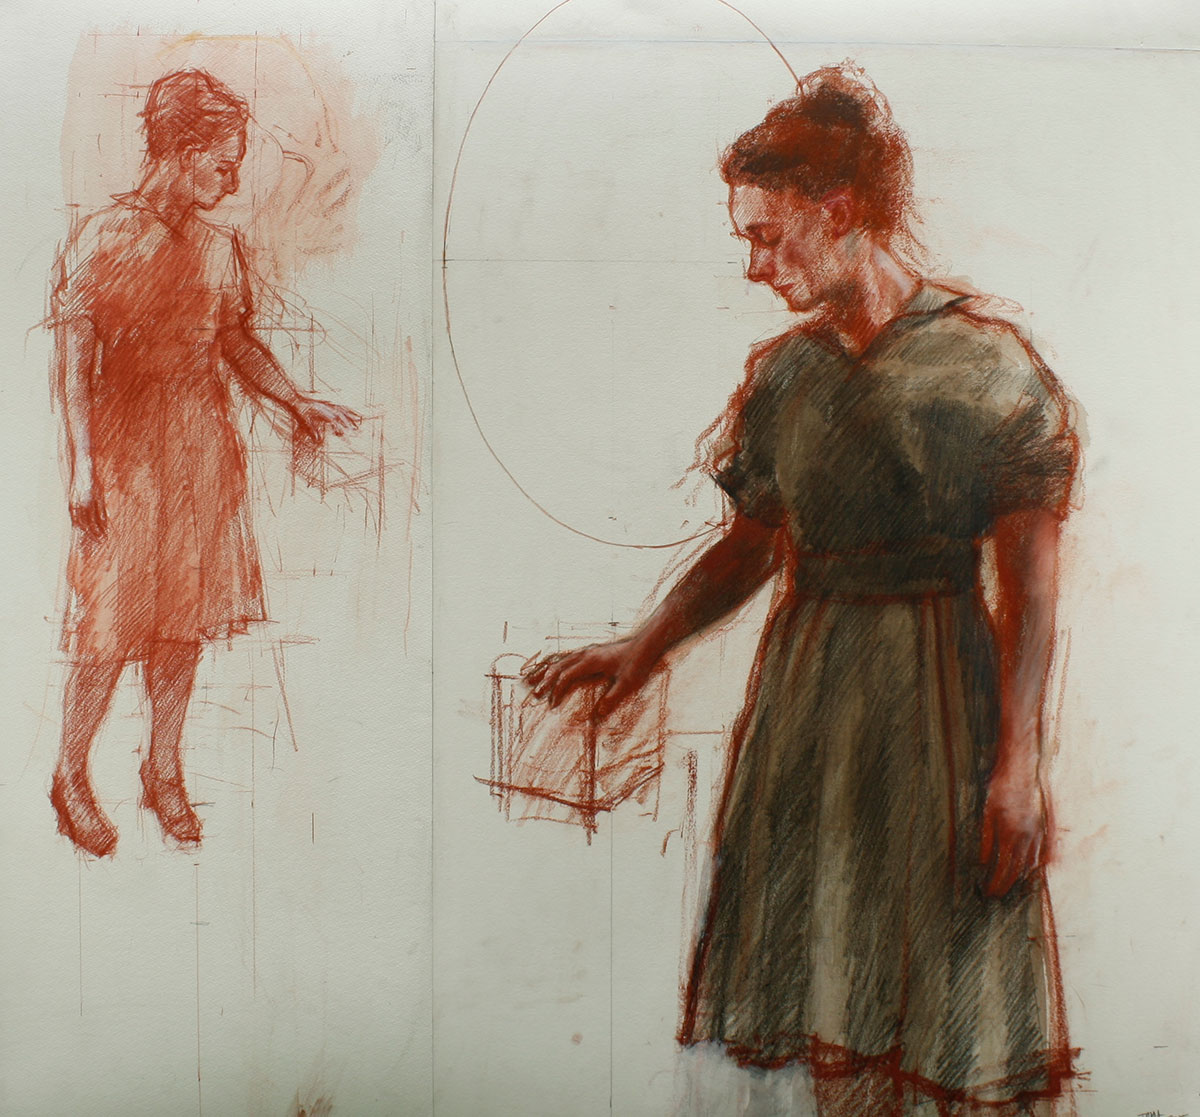 Tim Wright Helen Schone 14 Watersoluble pencil and chalk on paper, 104 x 112